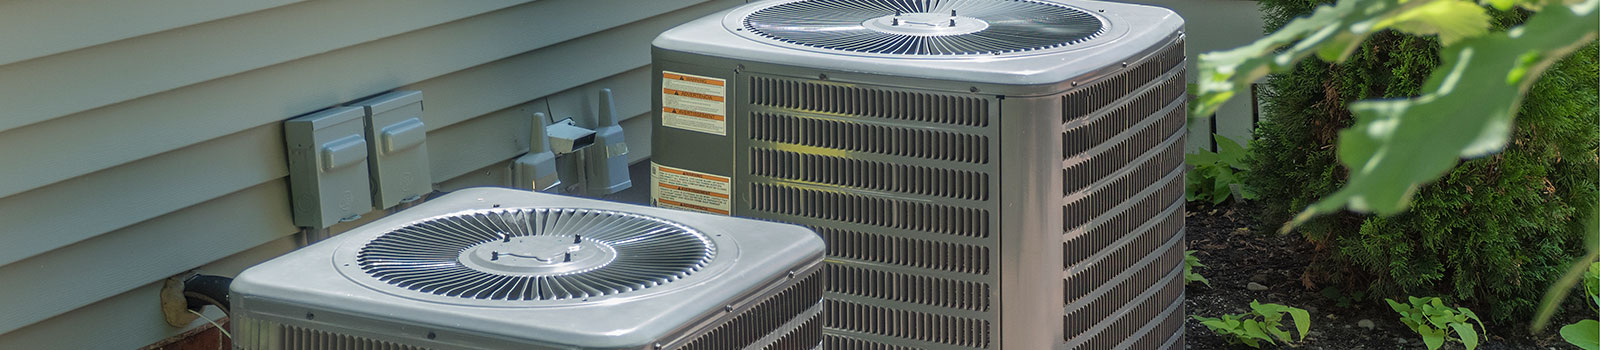 Heat Pumps and air conditioning service and installation